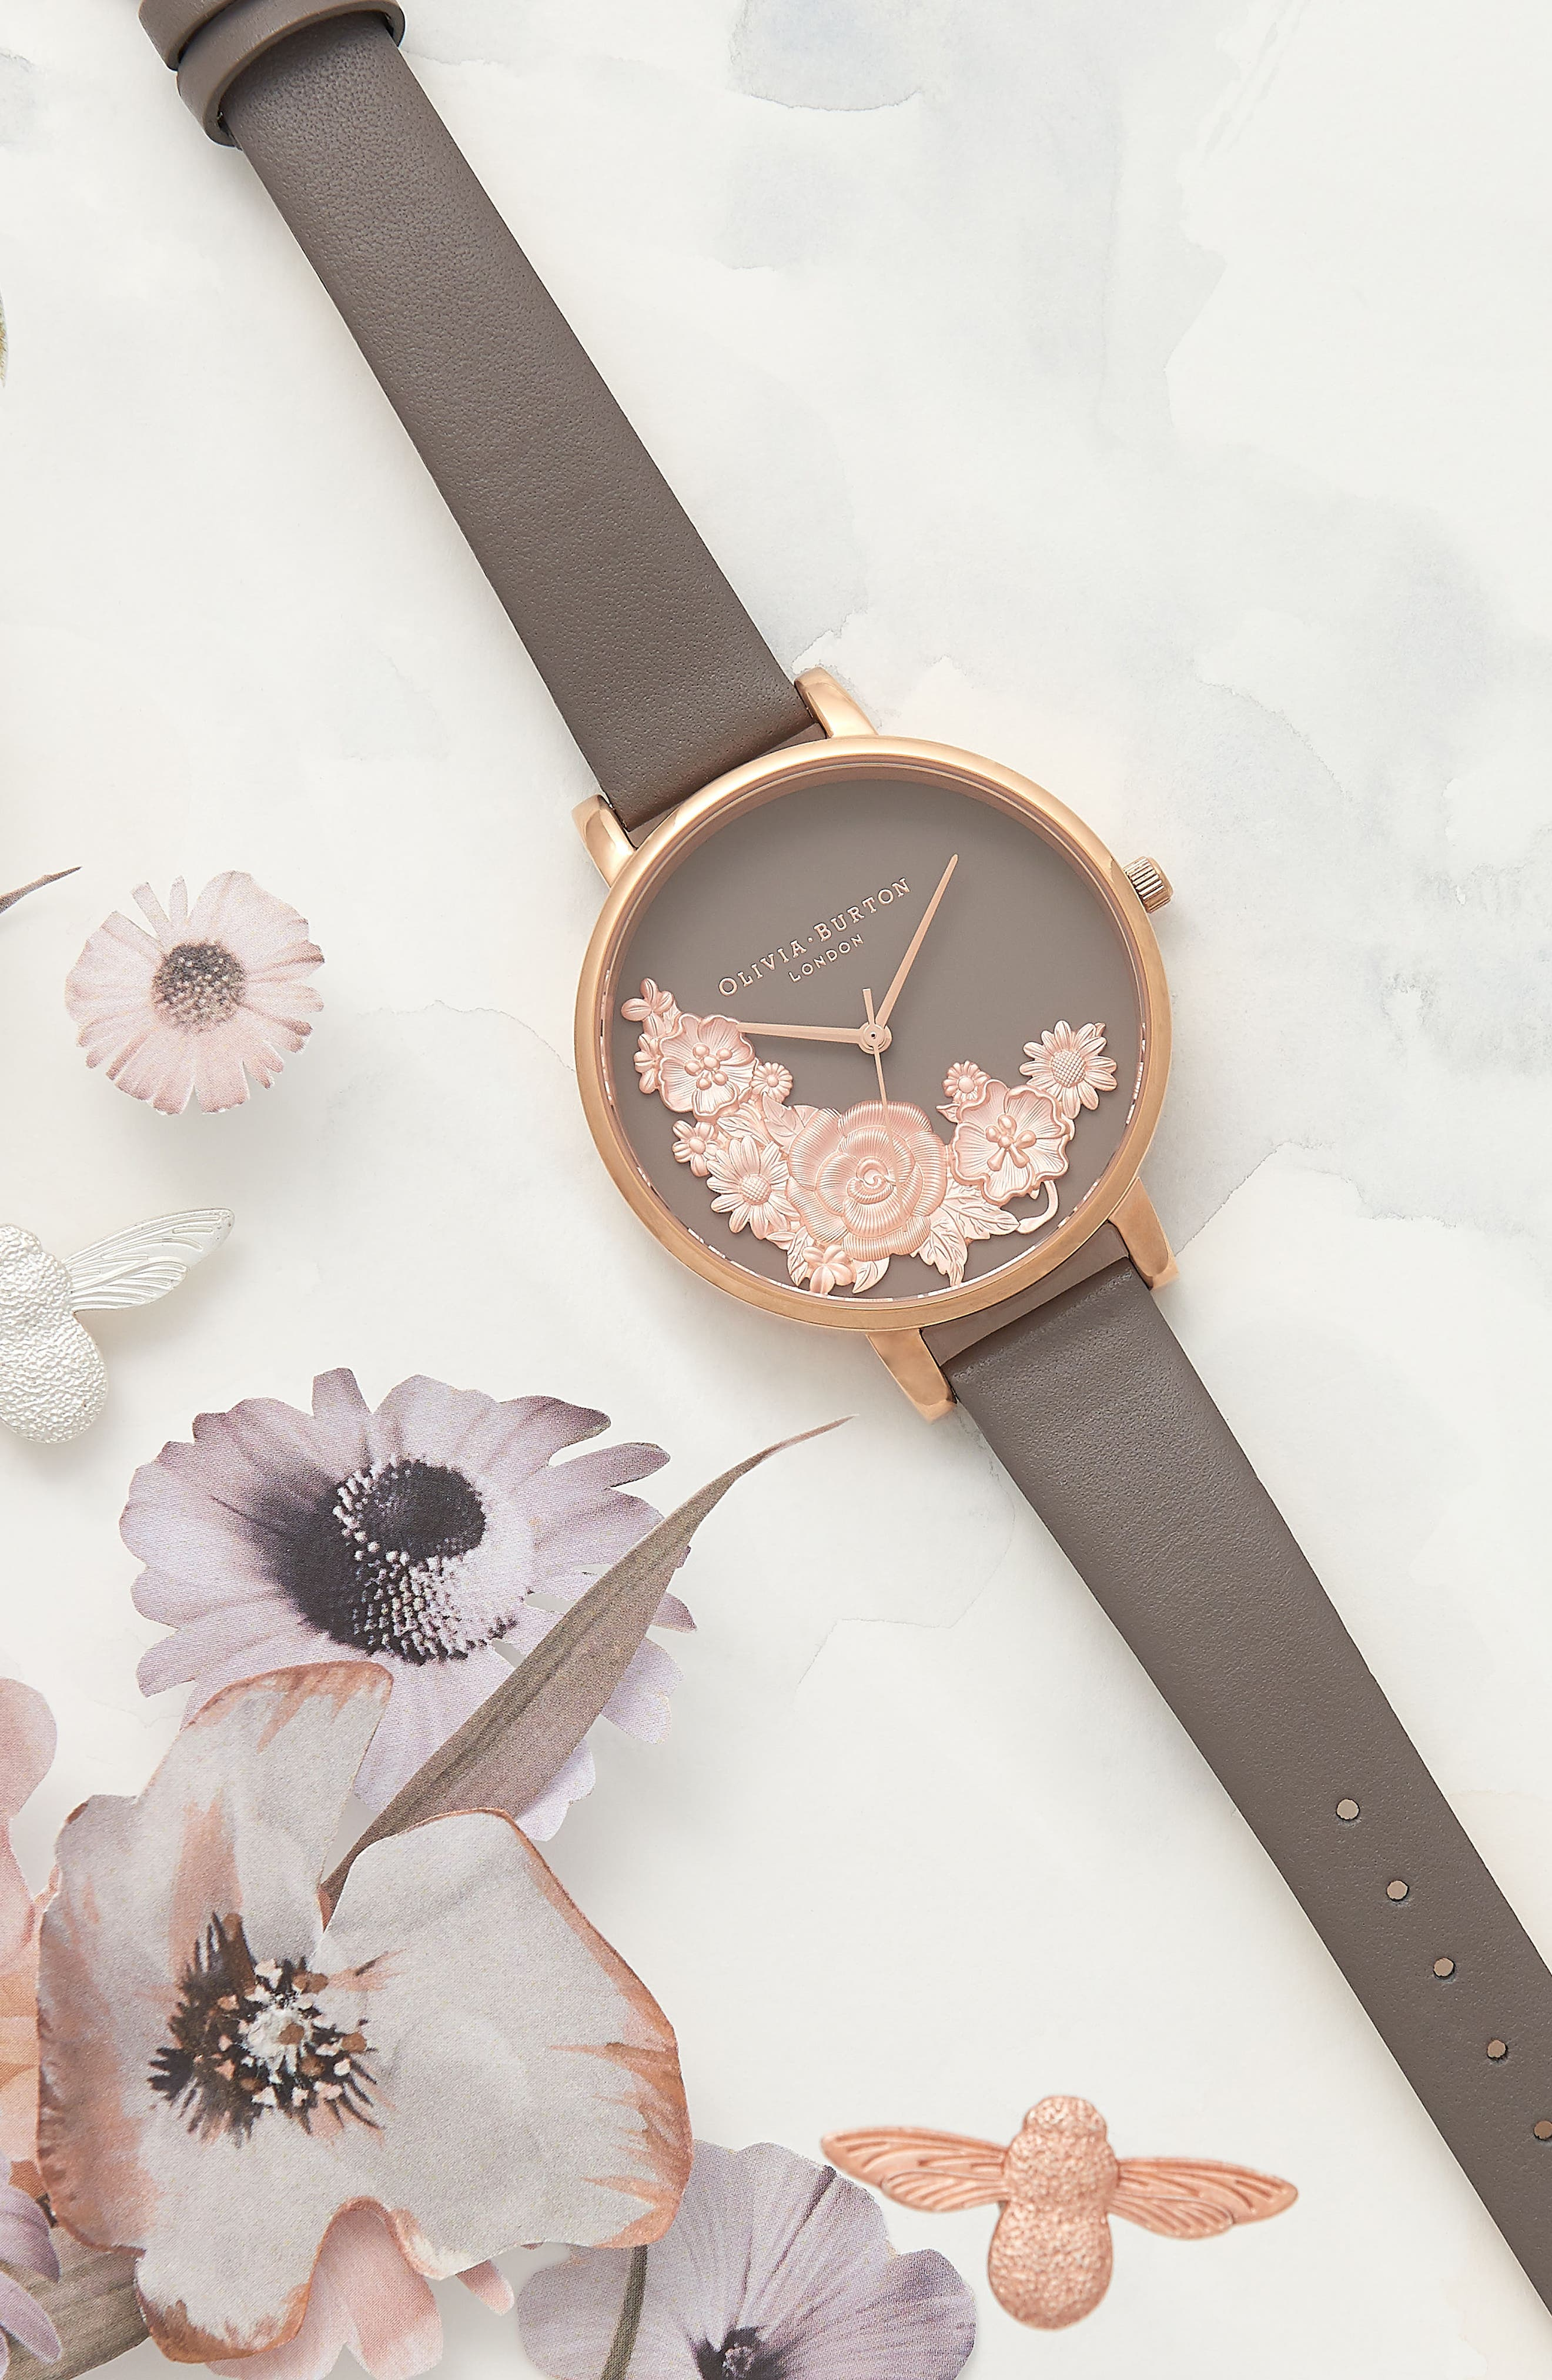 Floral Bouquet Leather Strap Watch, 38mm,                             Alternate thumbnail 7, color,                             LONDON GREY/ GREY/ ROSE GOLD